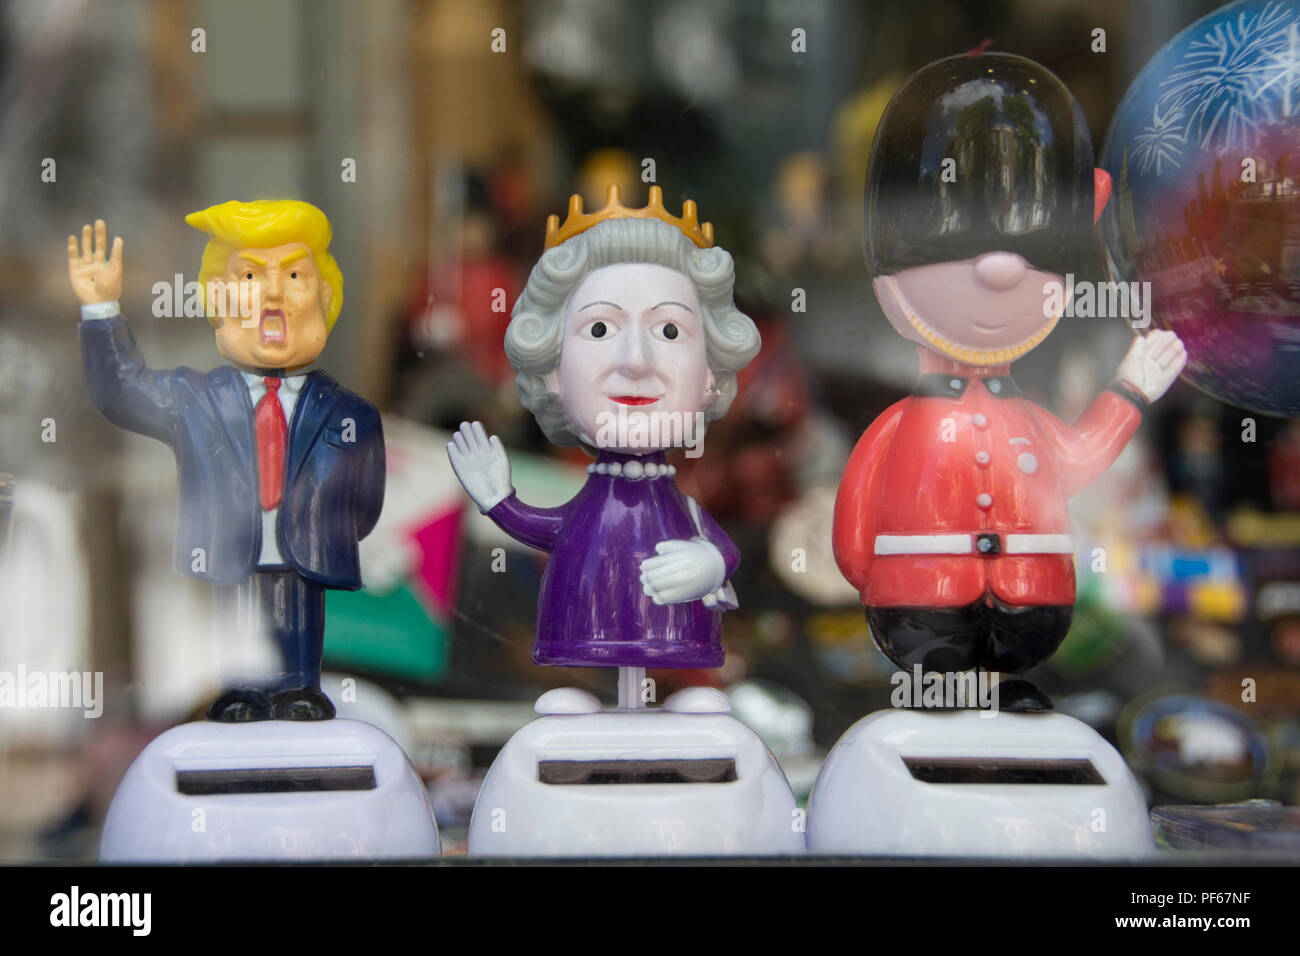 Did President Donald Trump's visit to the UK breach Royal Protocol when he met Queen Elizabeth 11? - Stock Image